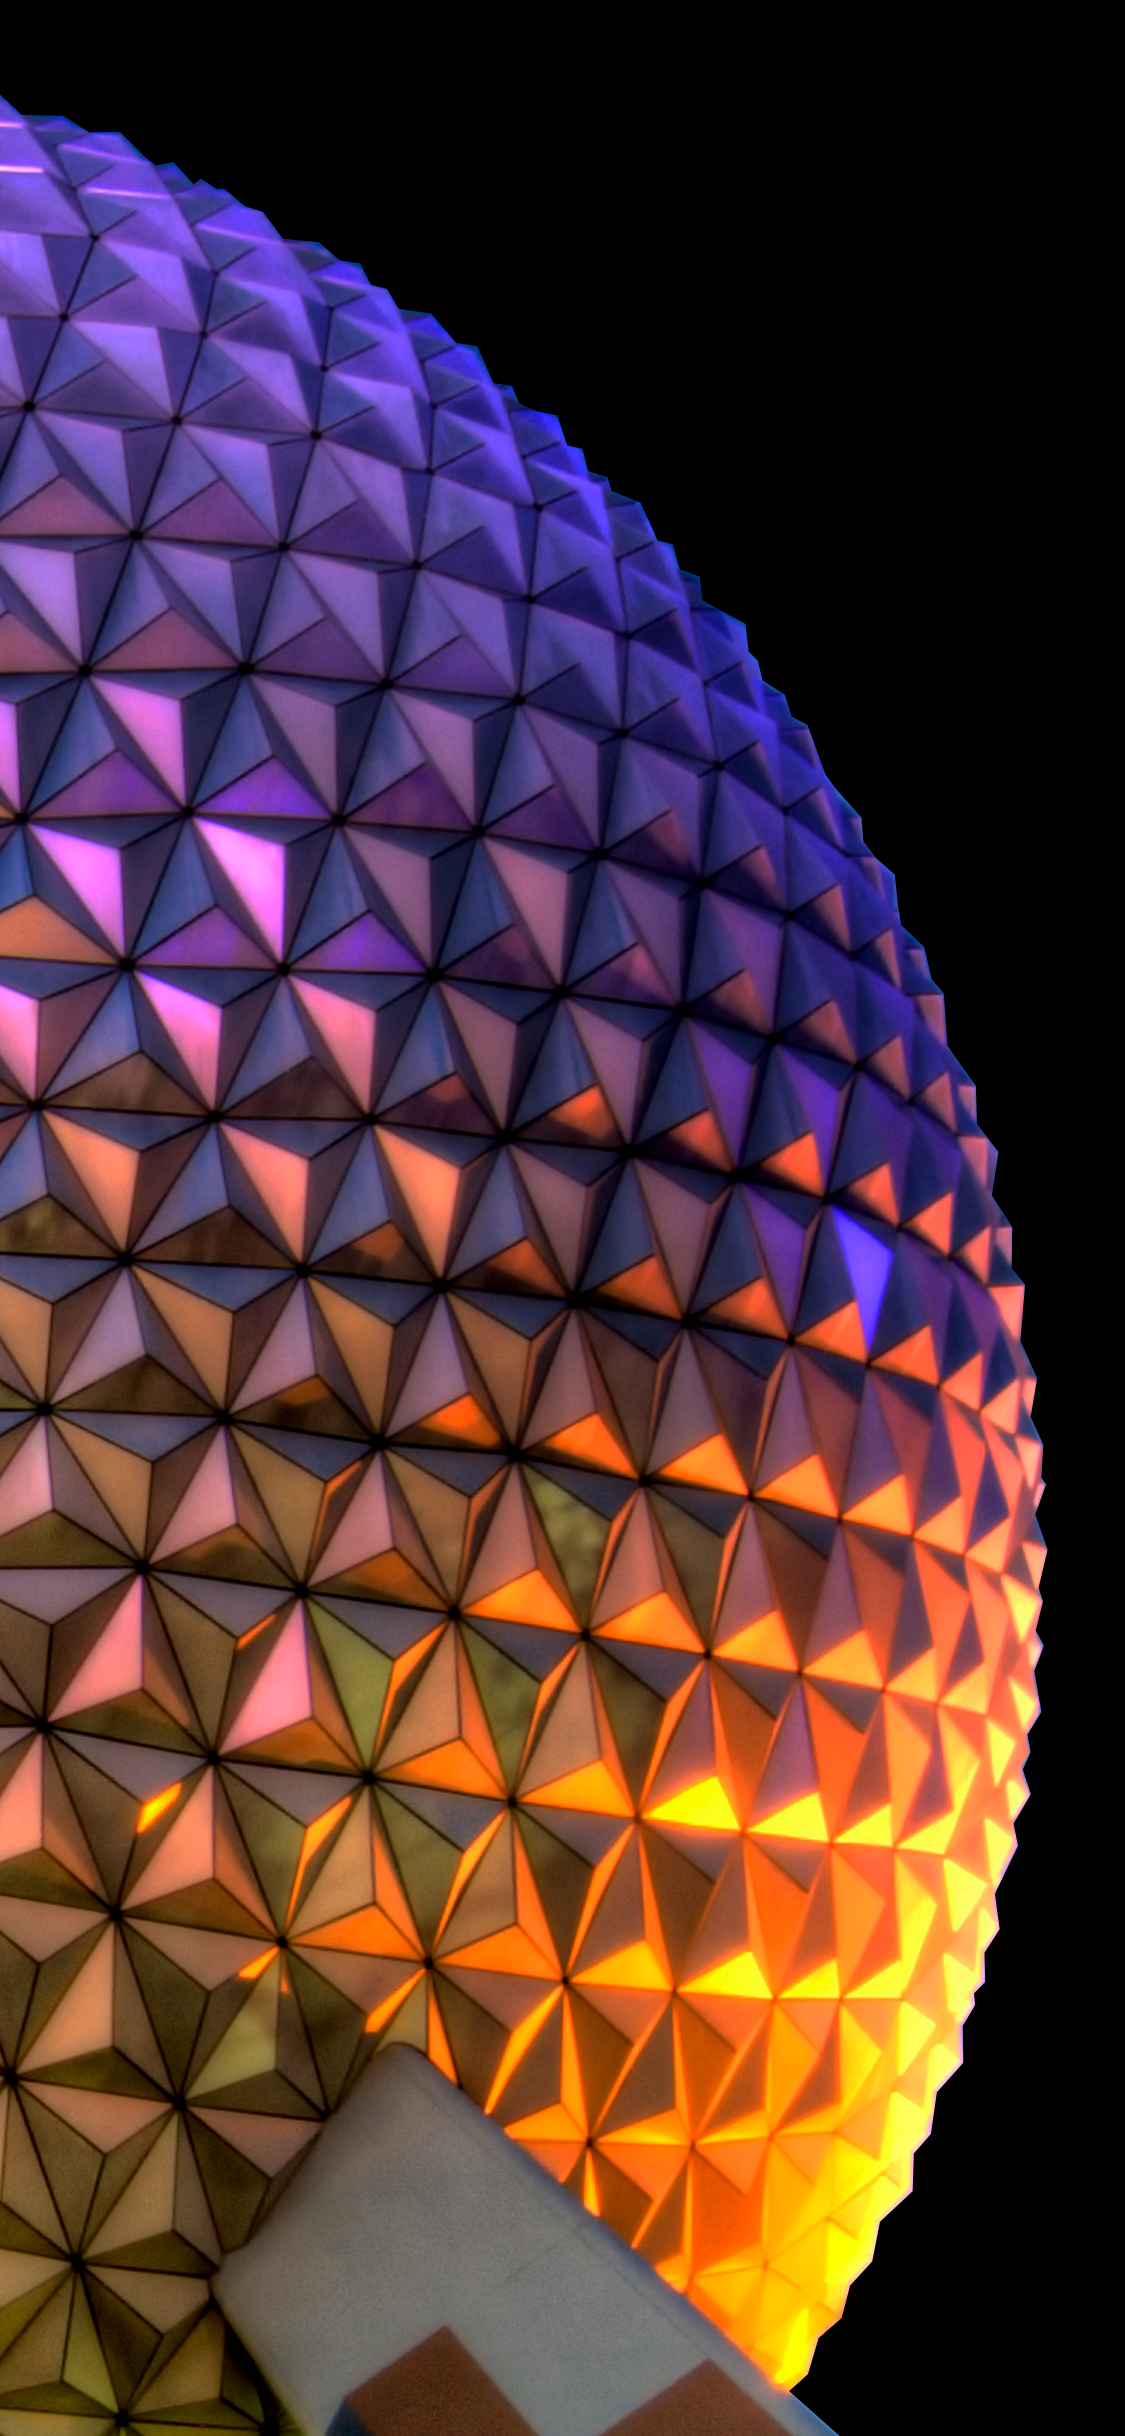 Download Spaceship Earth Wallpaper Hd Backgrounds Download